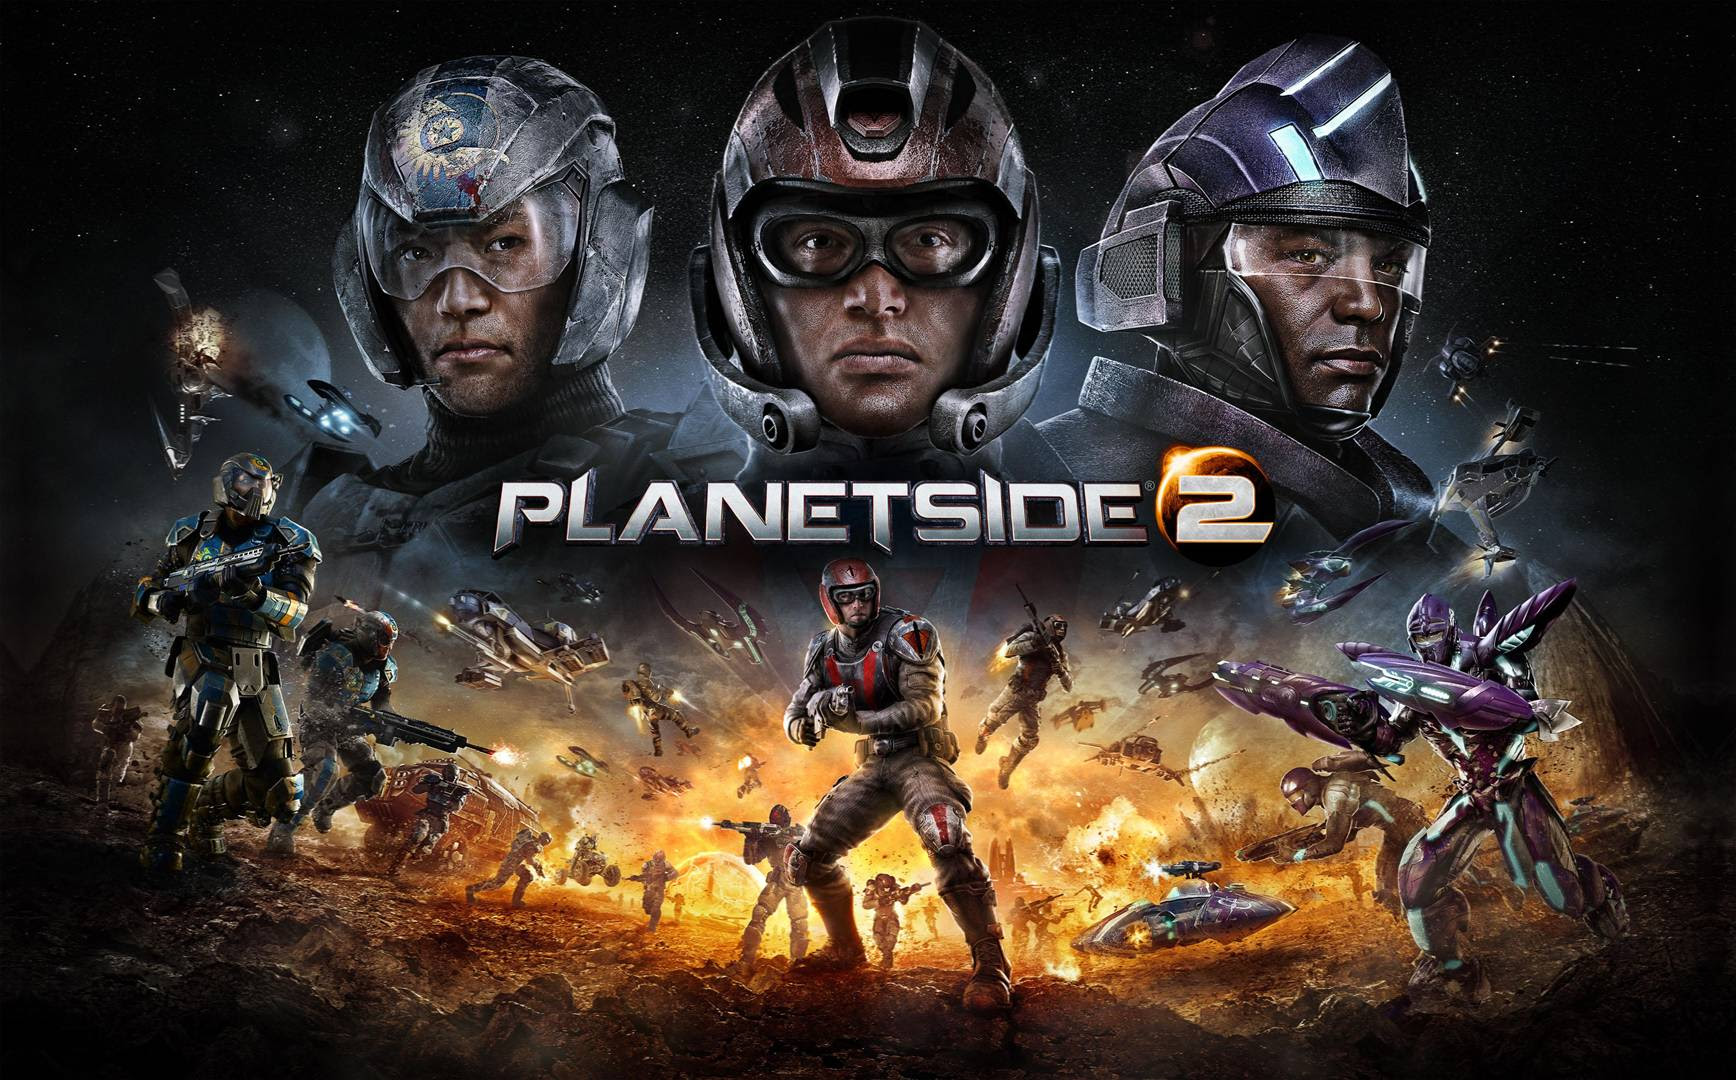 Planetside 2 free download